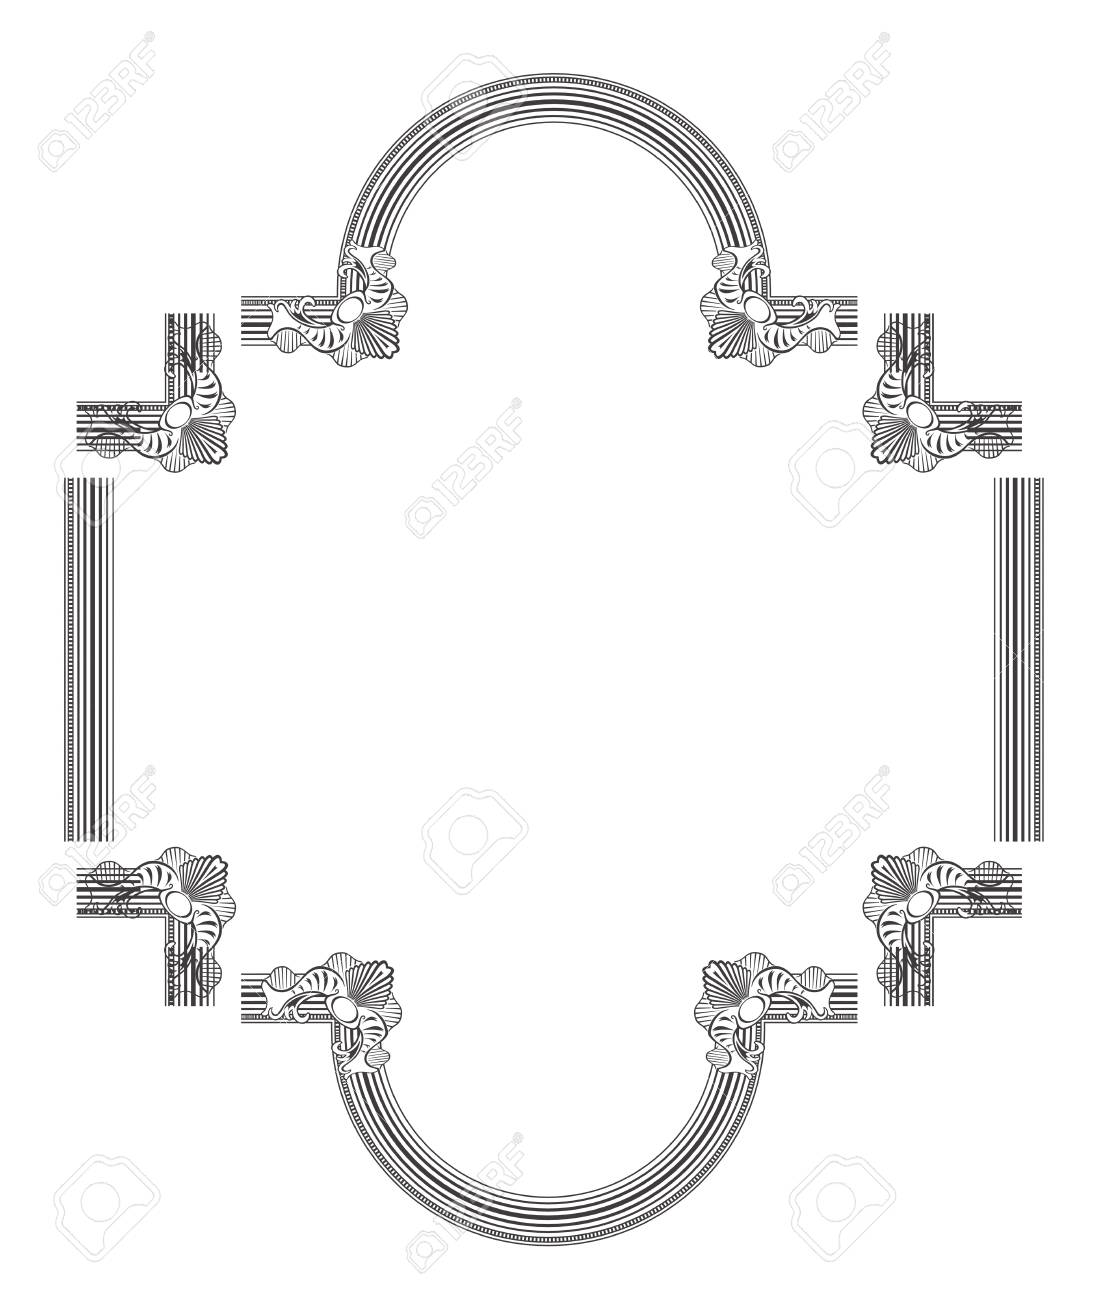 frame elements made in 2d software isolated on white